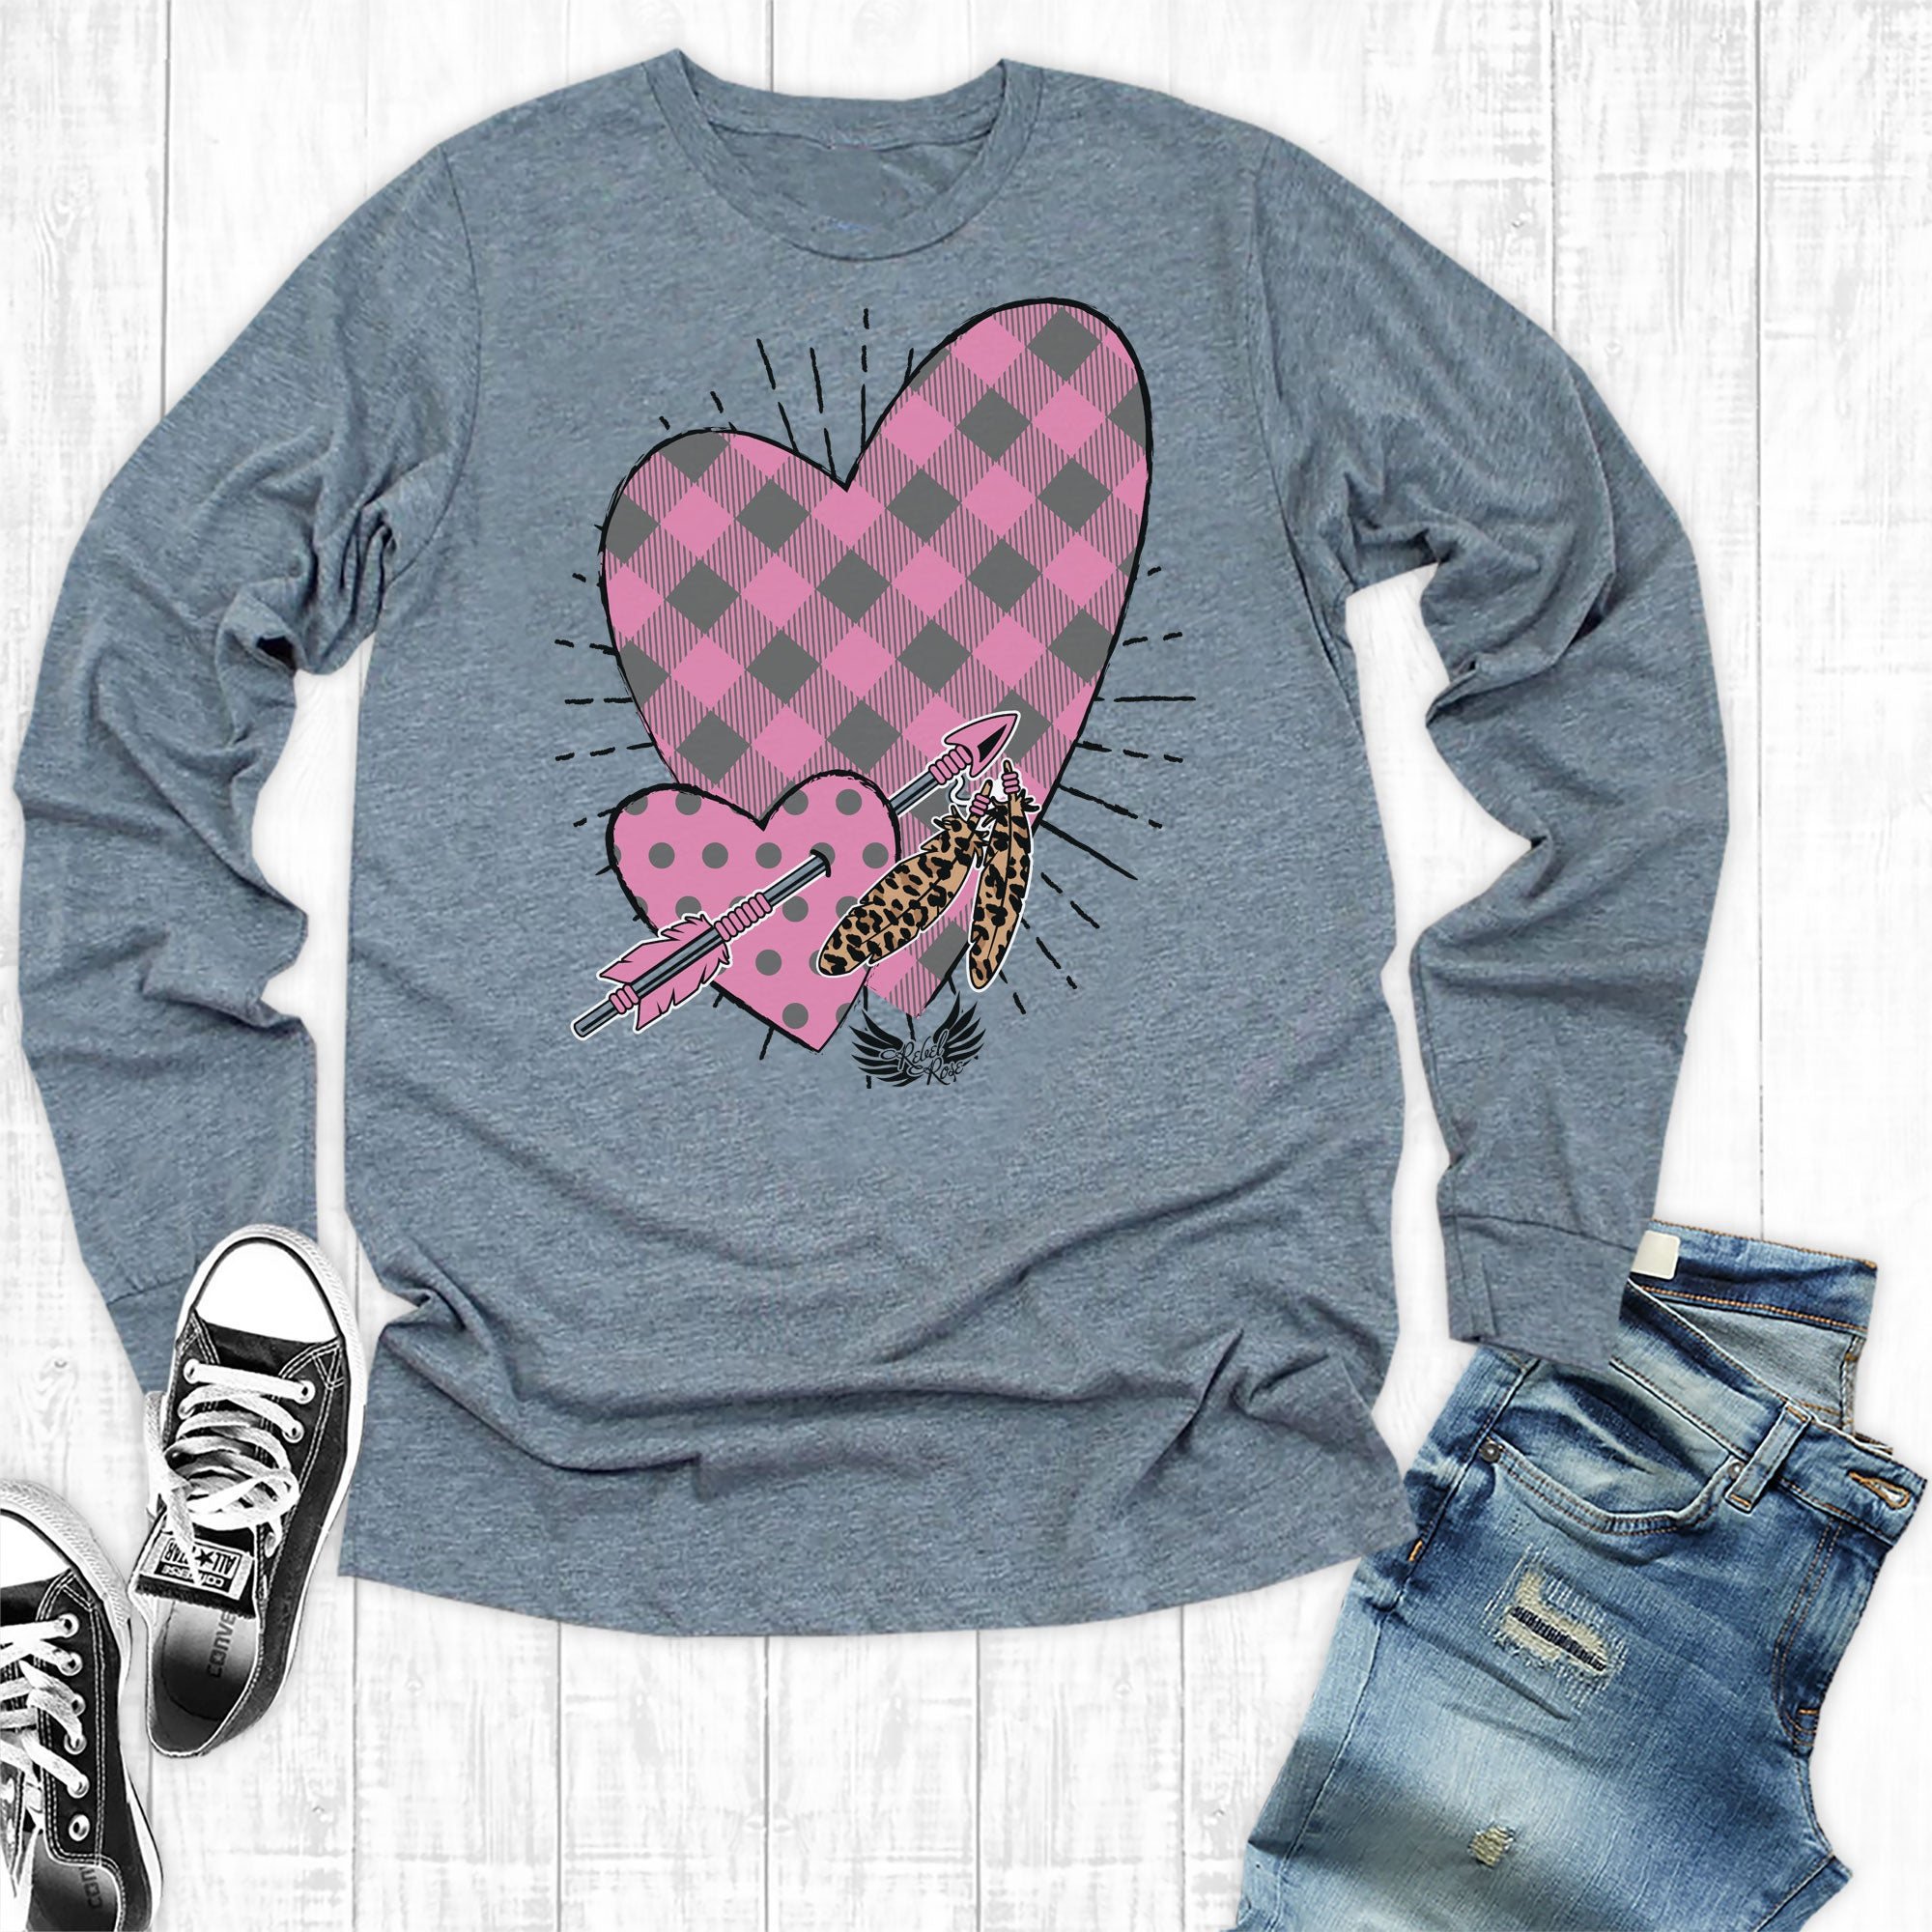 Hot Pink Plaid Heart Long sleeve